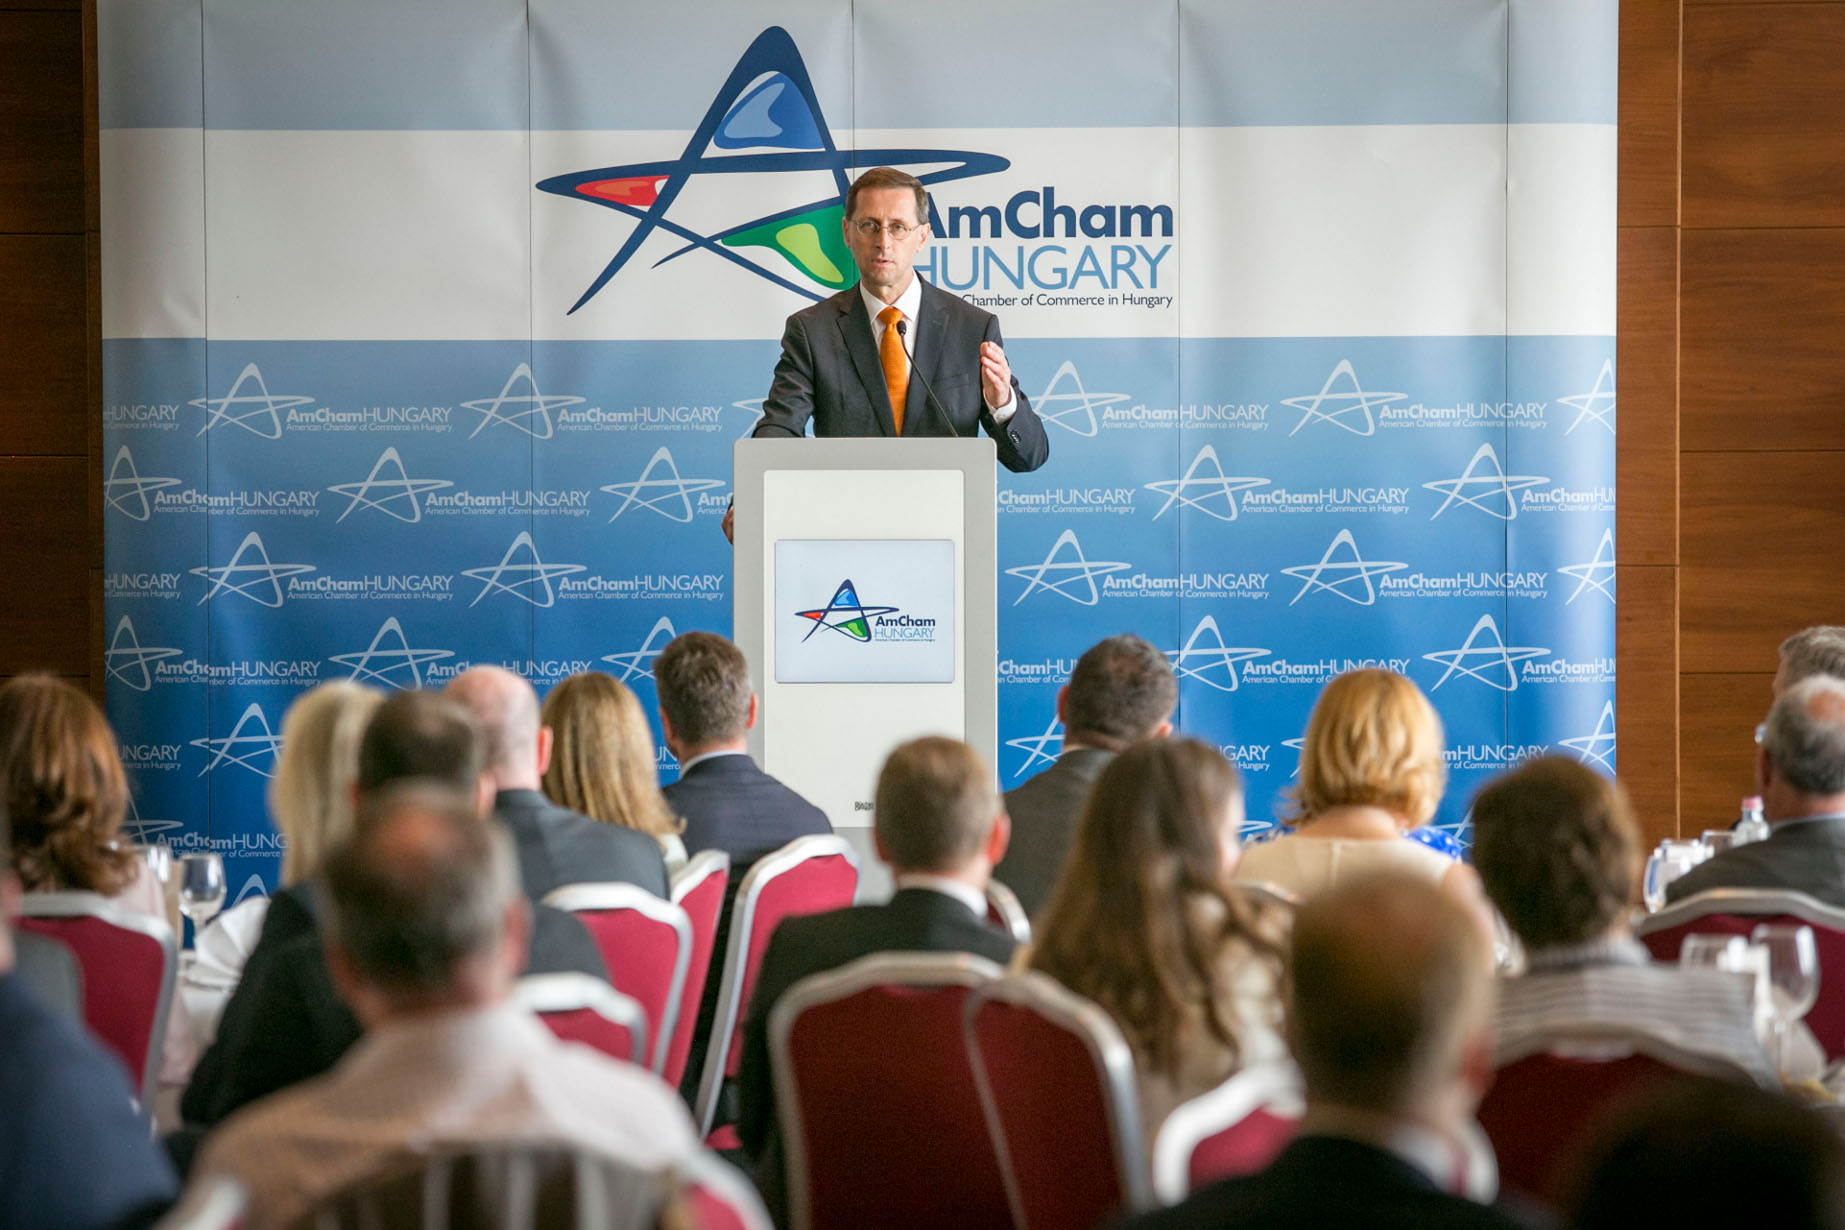 Finance Minister Presents Latest Tax Cuts, Growth Incentives At Amcham Forum